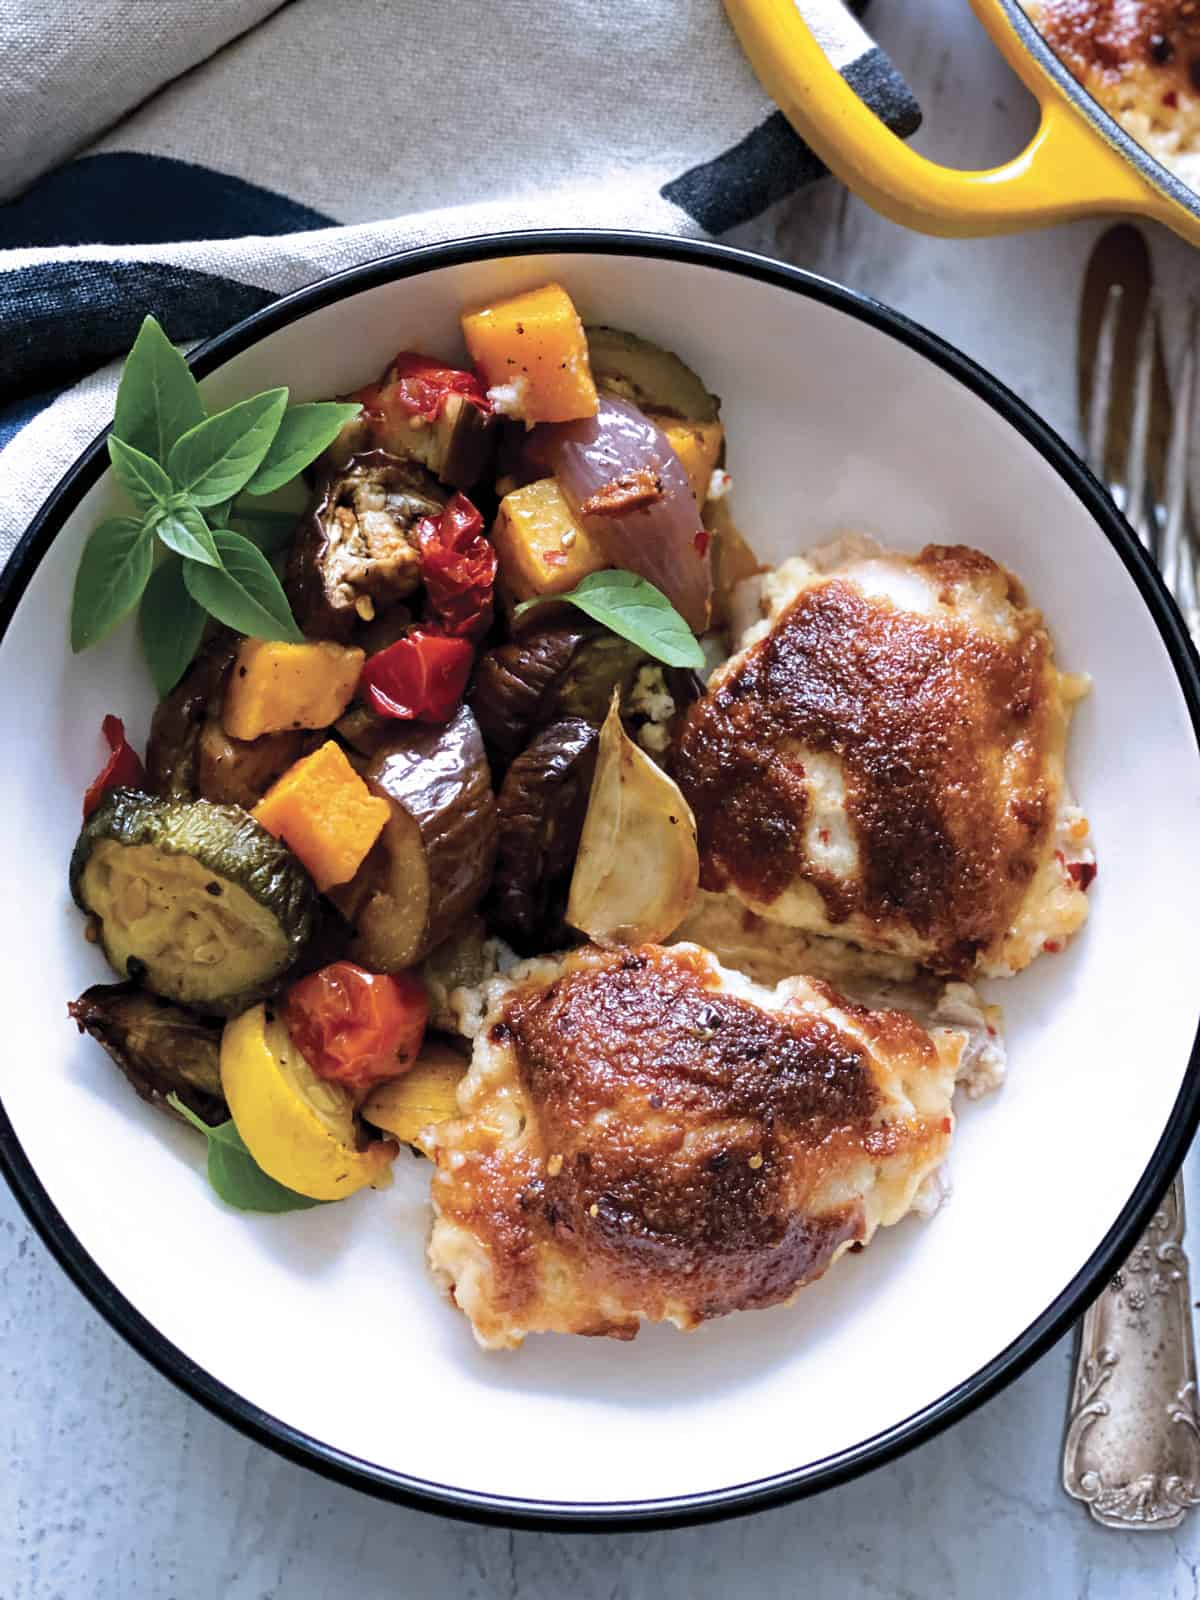 Two pieces of parmesan crusted chicken with mayo and vegetables on a plate, part of a yellow pan with chicken at the back and a cloth napkin, all on a white table.